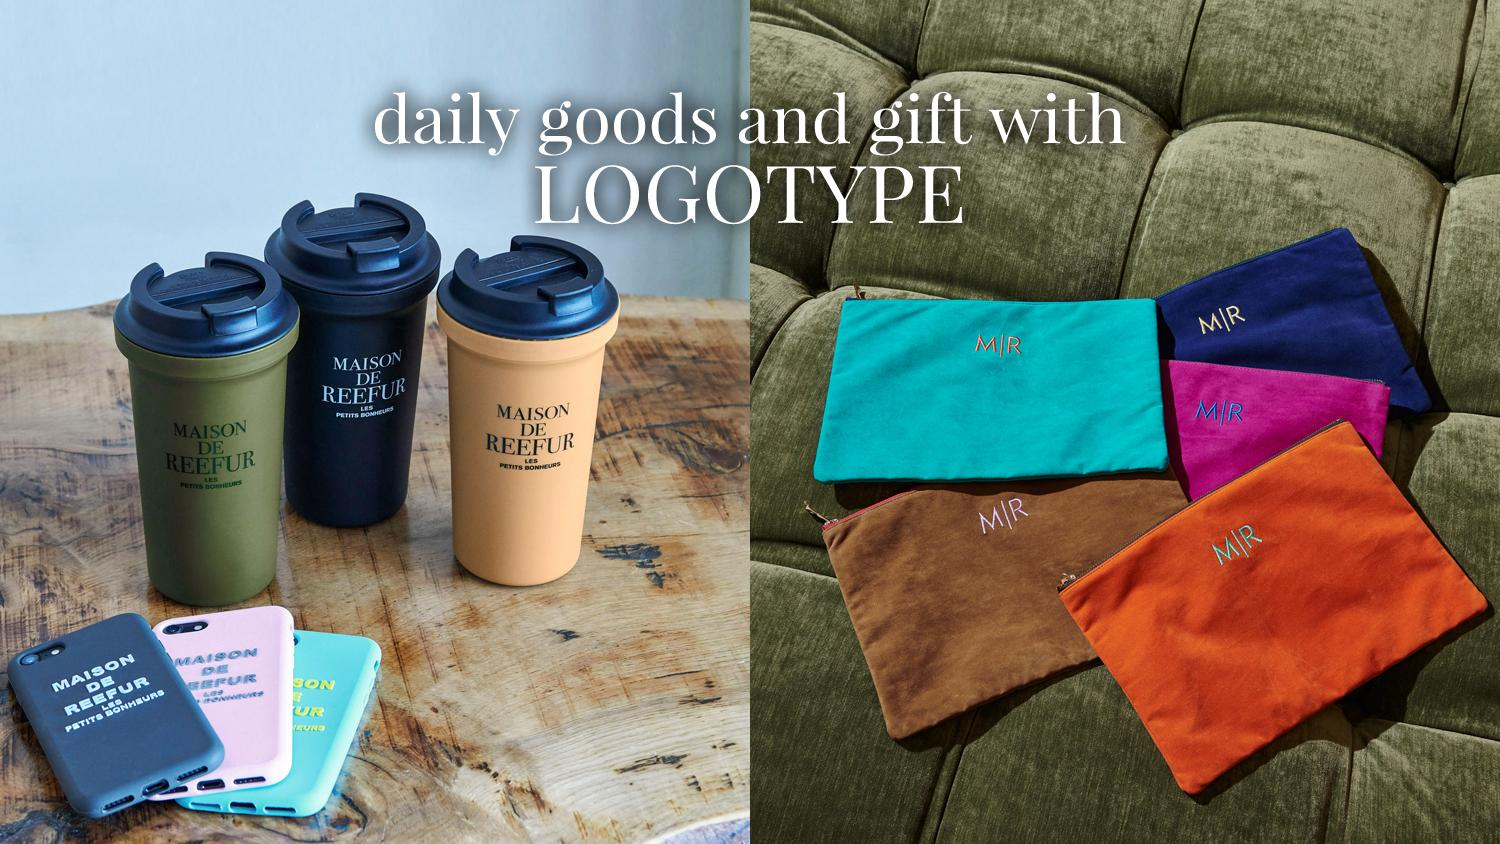 daily goods and gift with LOGOTYPE